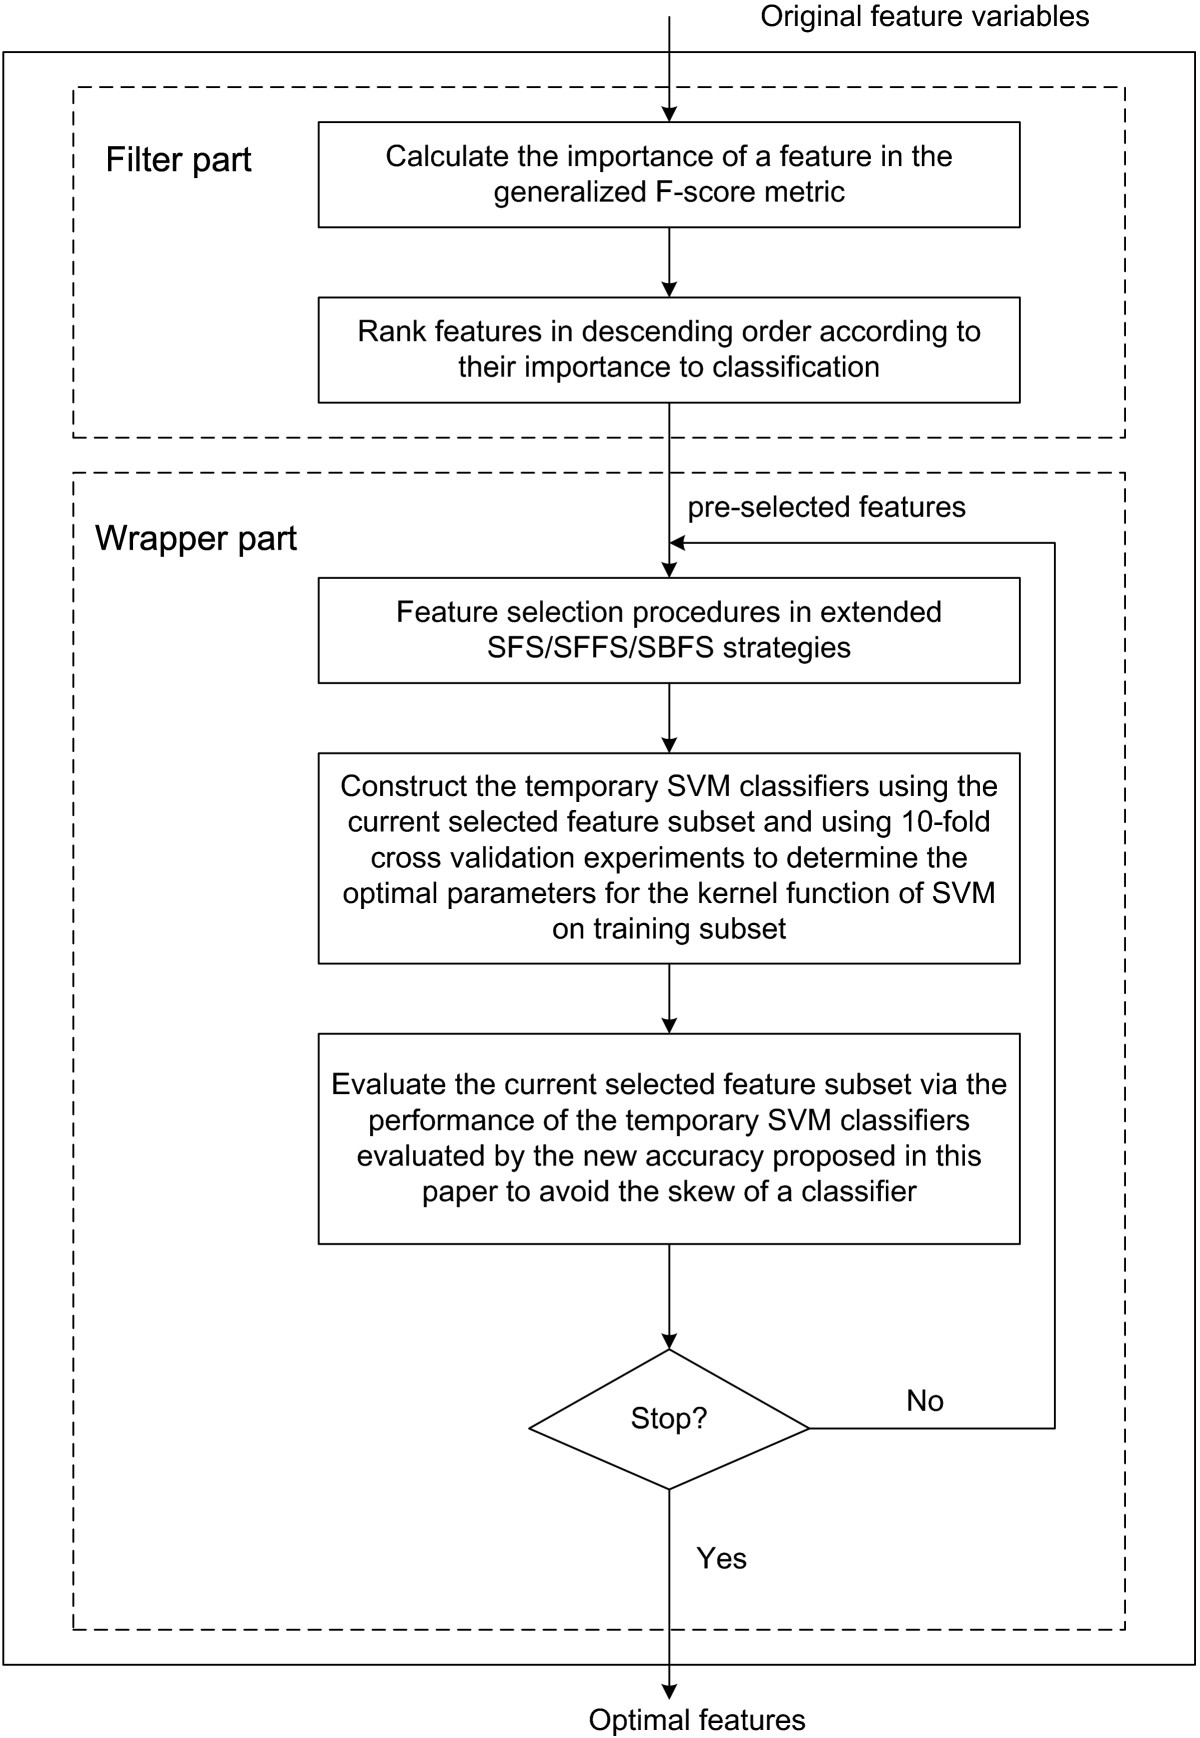 http://static-content.springer.com/image/art%3A10.1186%2F2047-2501-1-10/MediaObjects/13755_2012_Article_10_Fig1_HTML.jpg